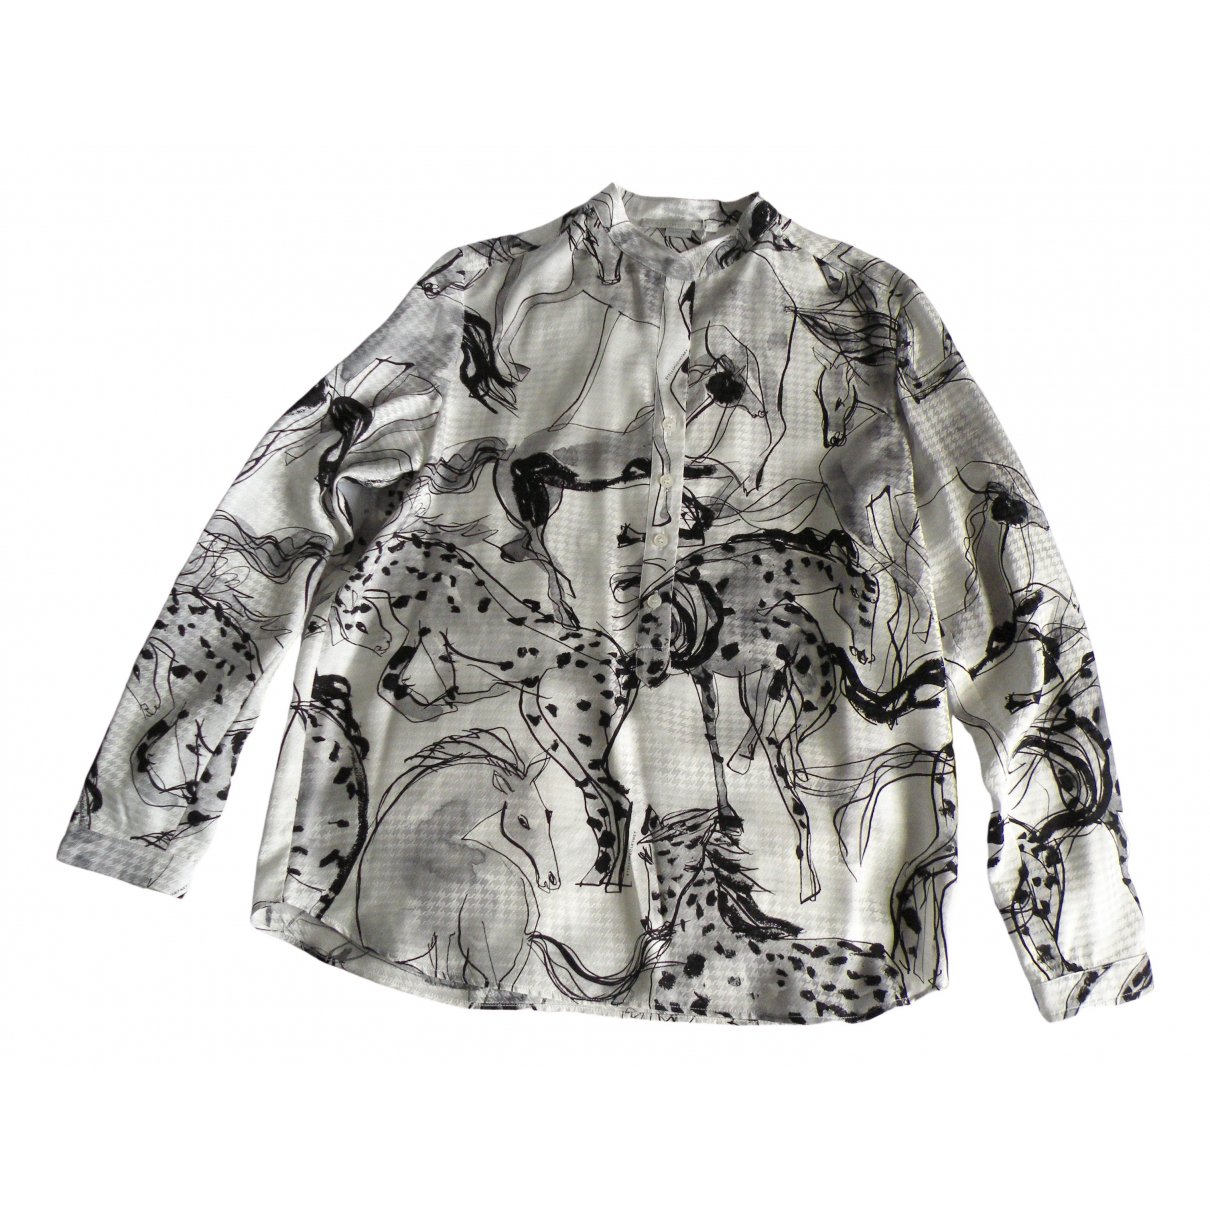 Stella Mccartney \N Top in  Weiss Seide